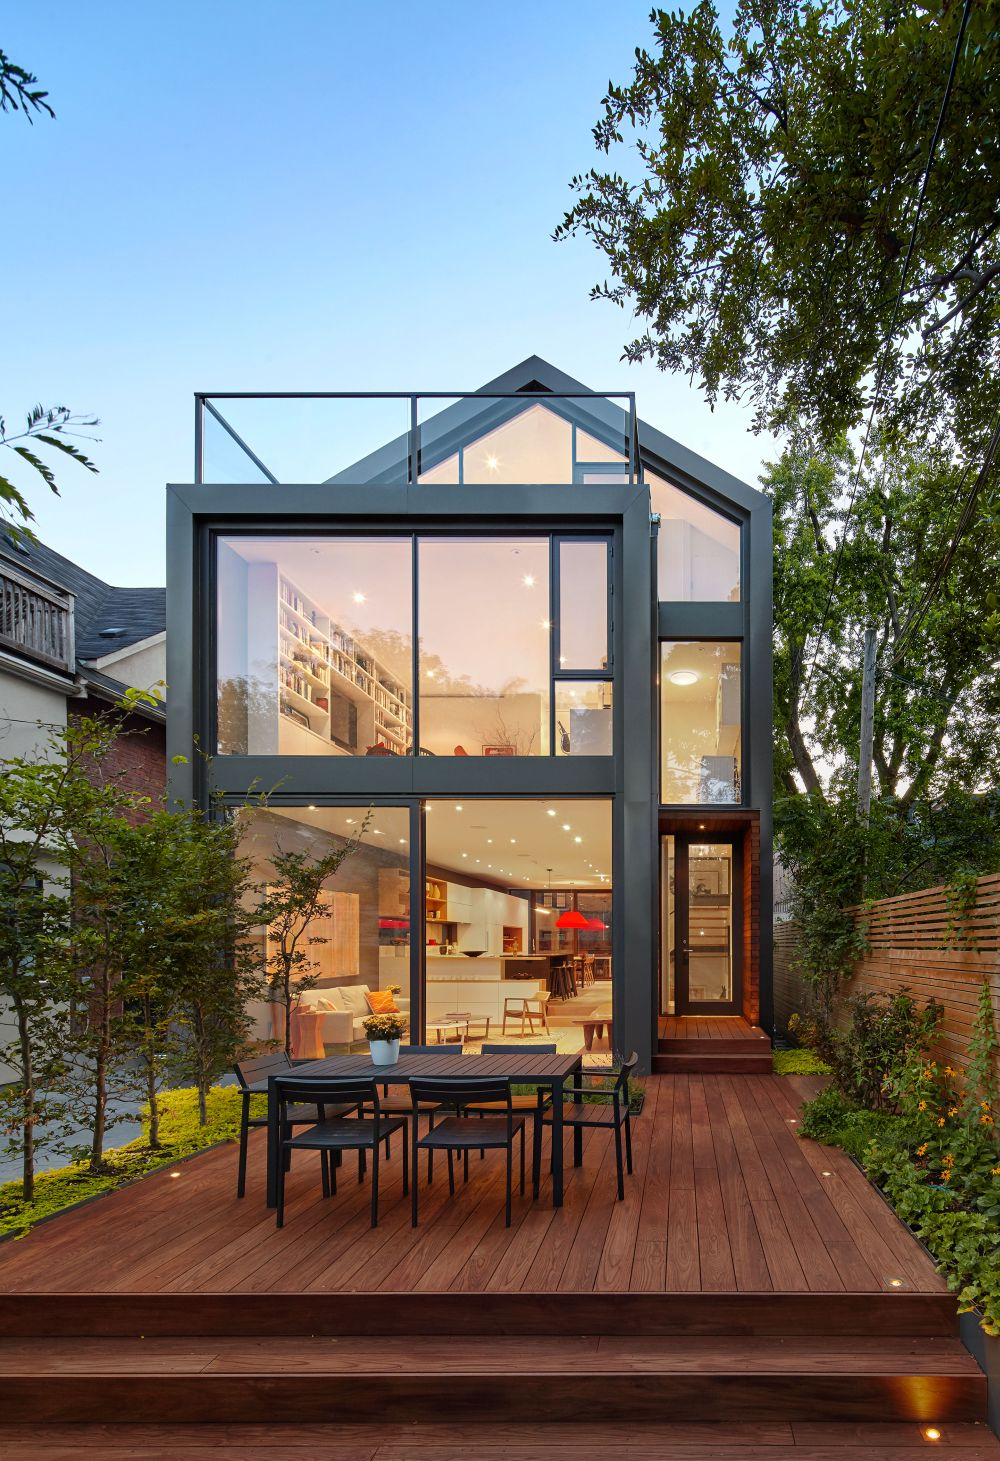 1557475923 293 modern house brings the countryside charm into the city - Modern House Brings The Countryside Charm Into The City